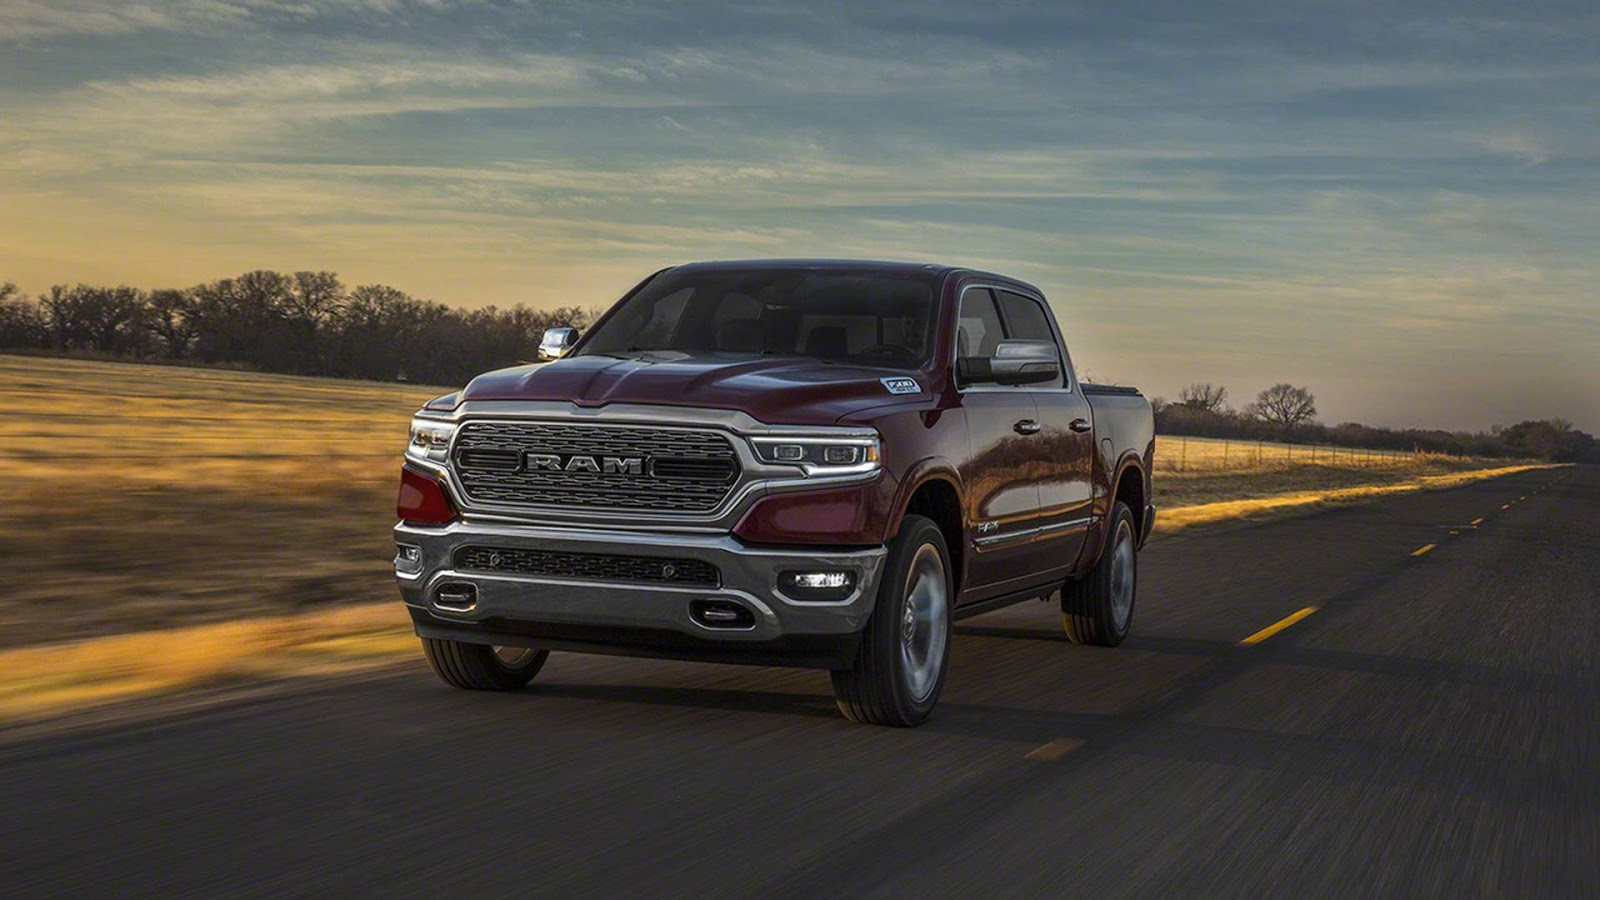 2020 Ram 1500 To Share New EcoDiesel V6 With Jeep ...